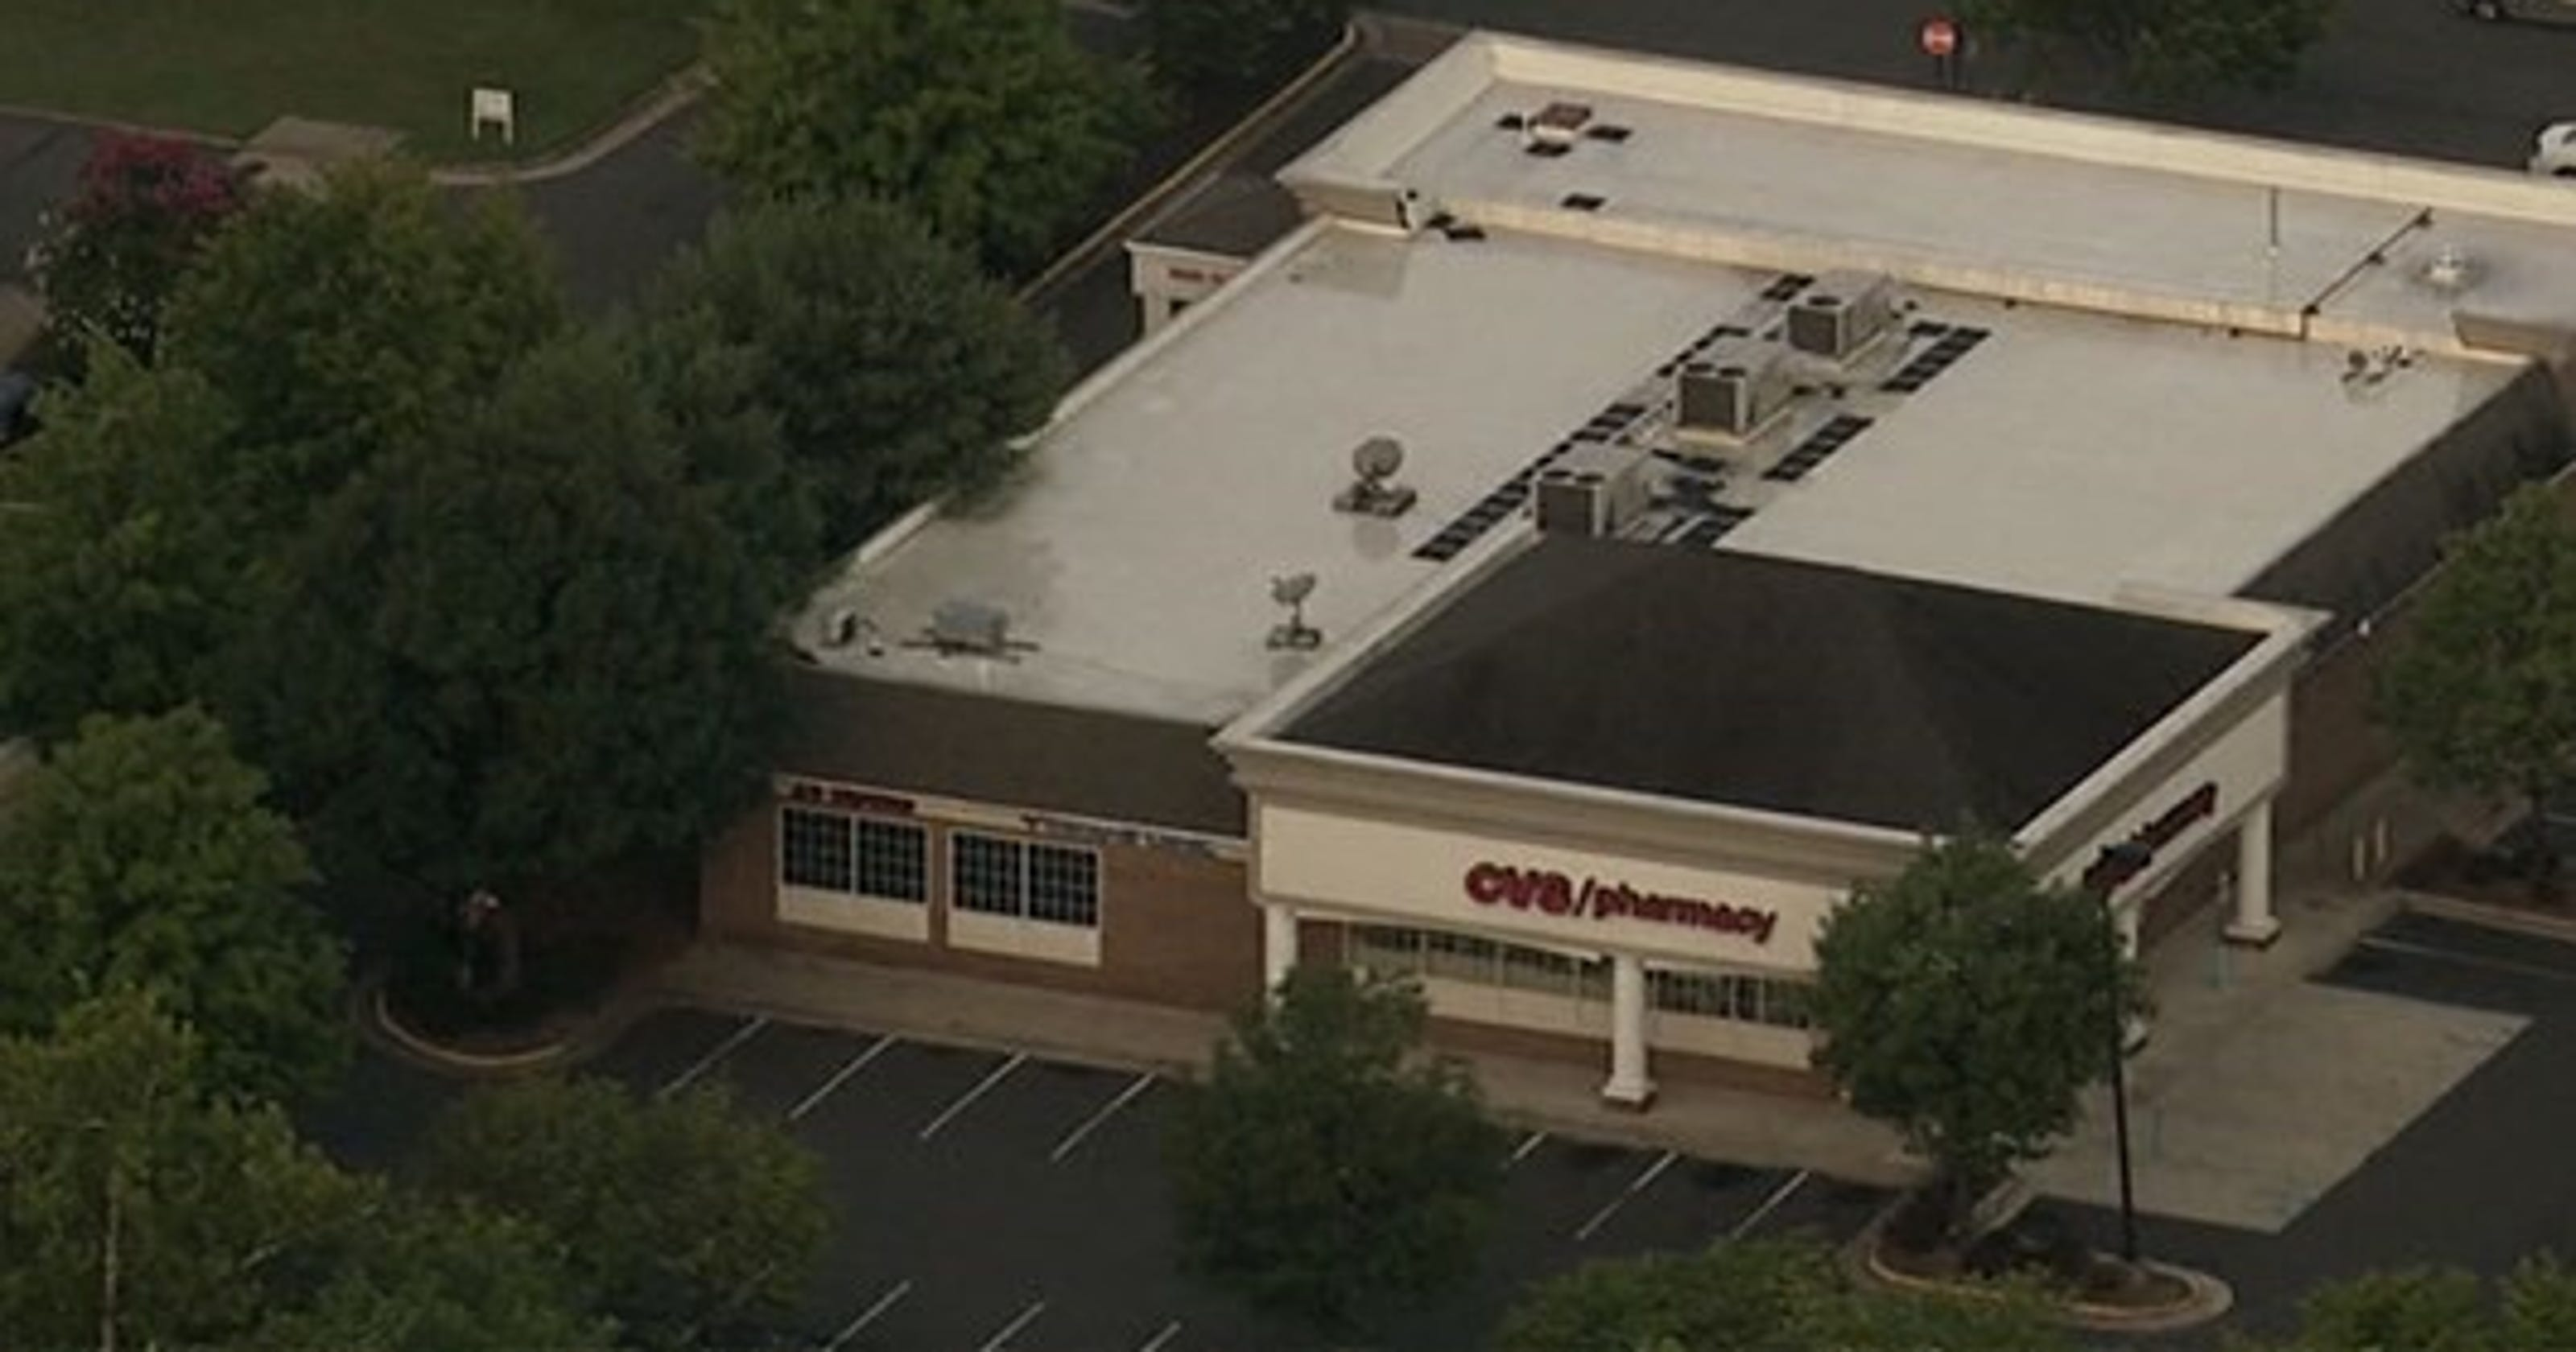 76 year old cvs employee accused of killing manager found by dumpster